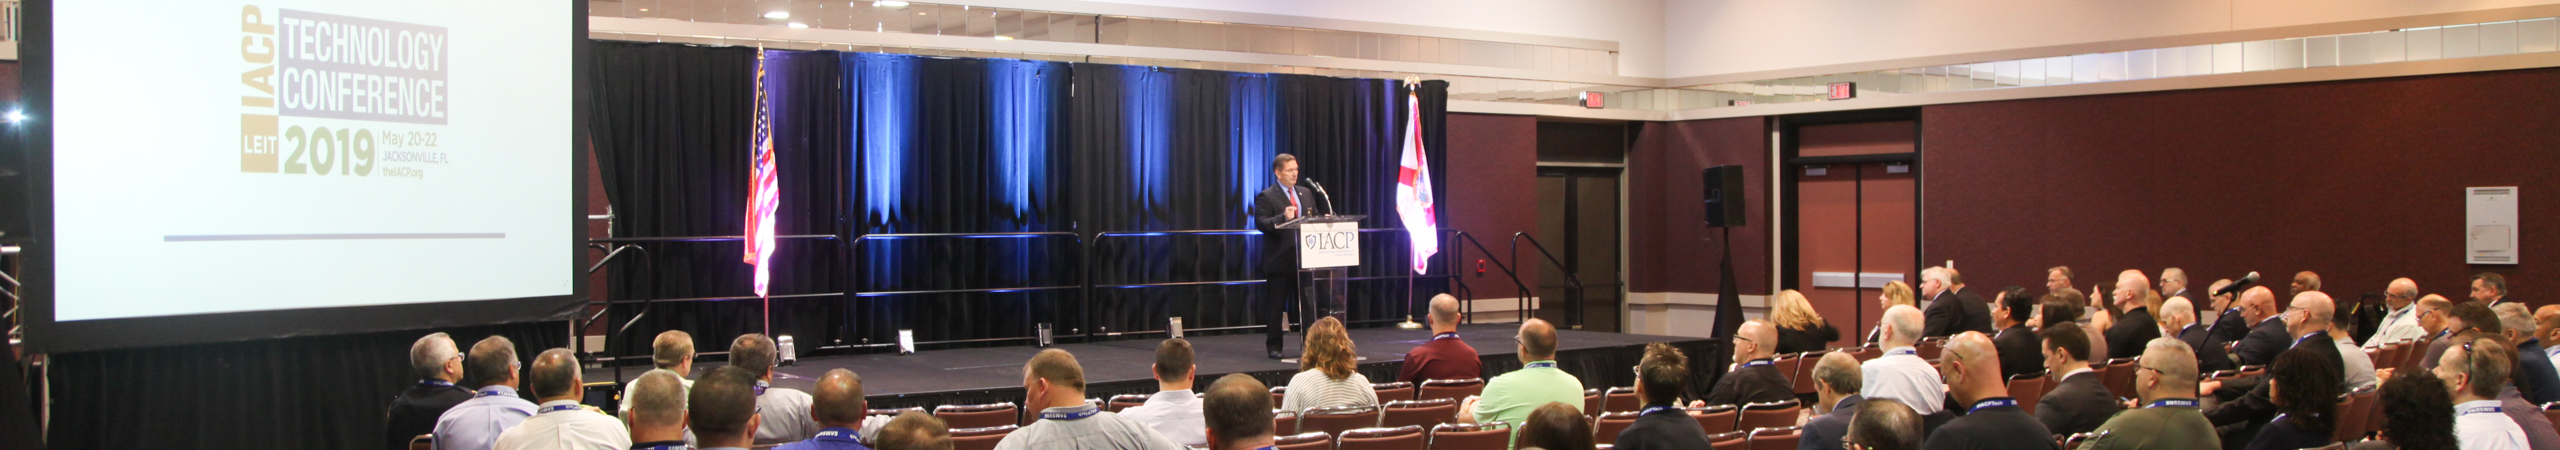 IACP Technology Conference